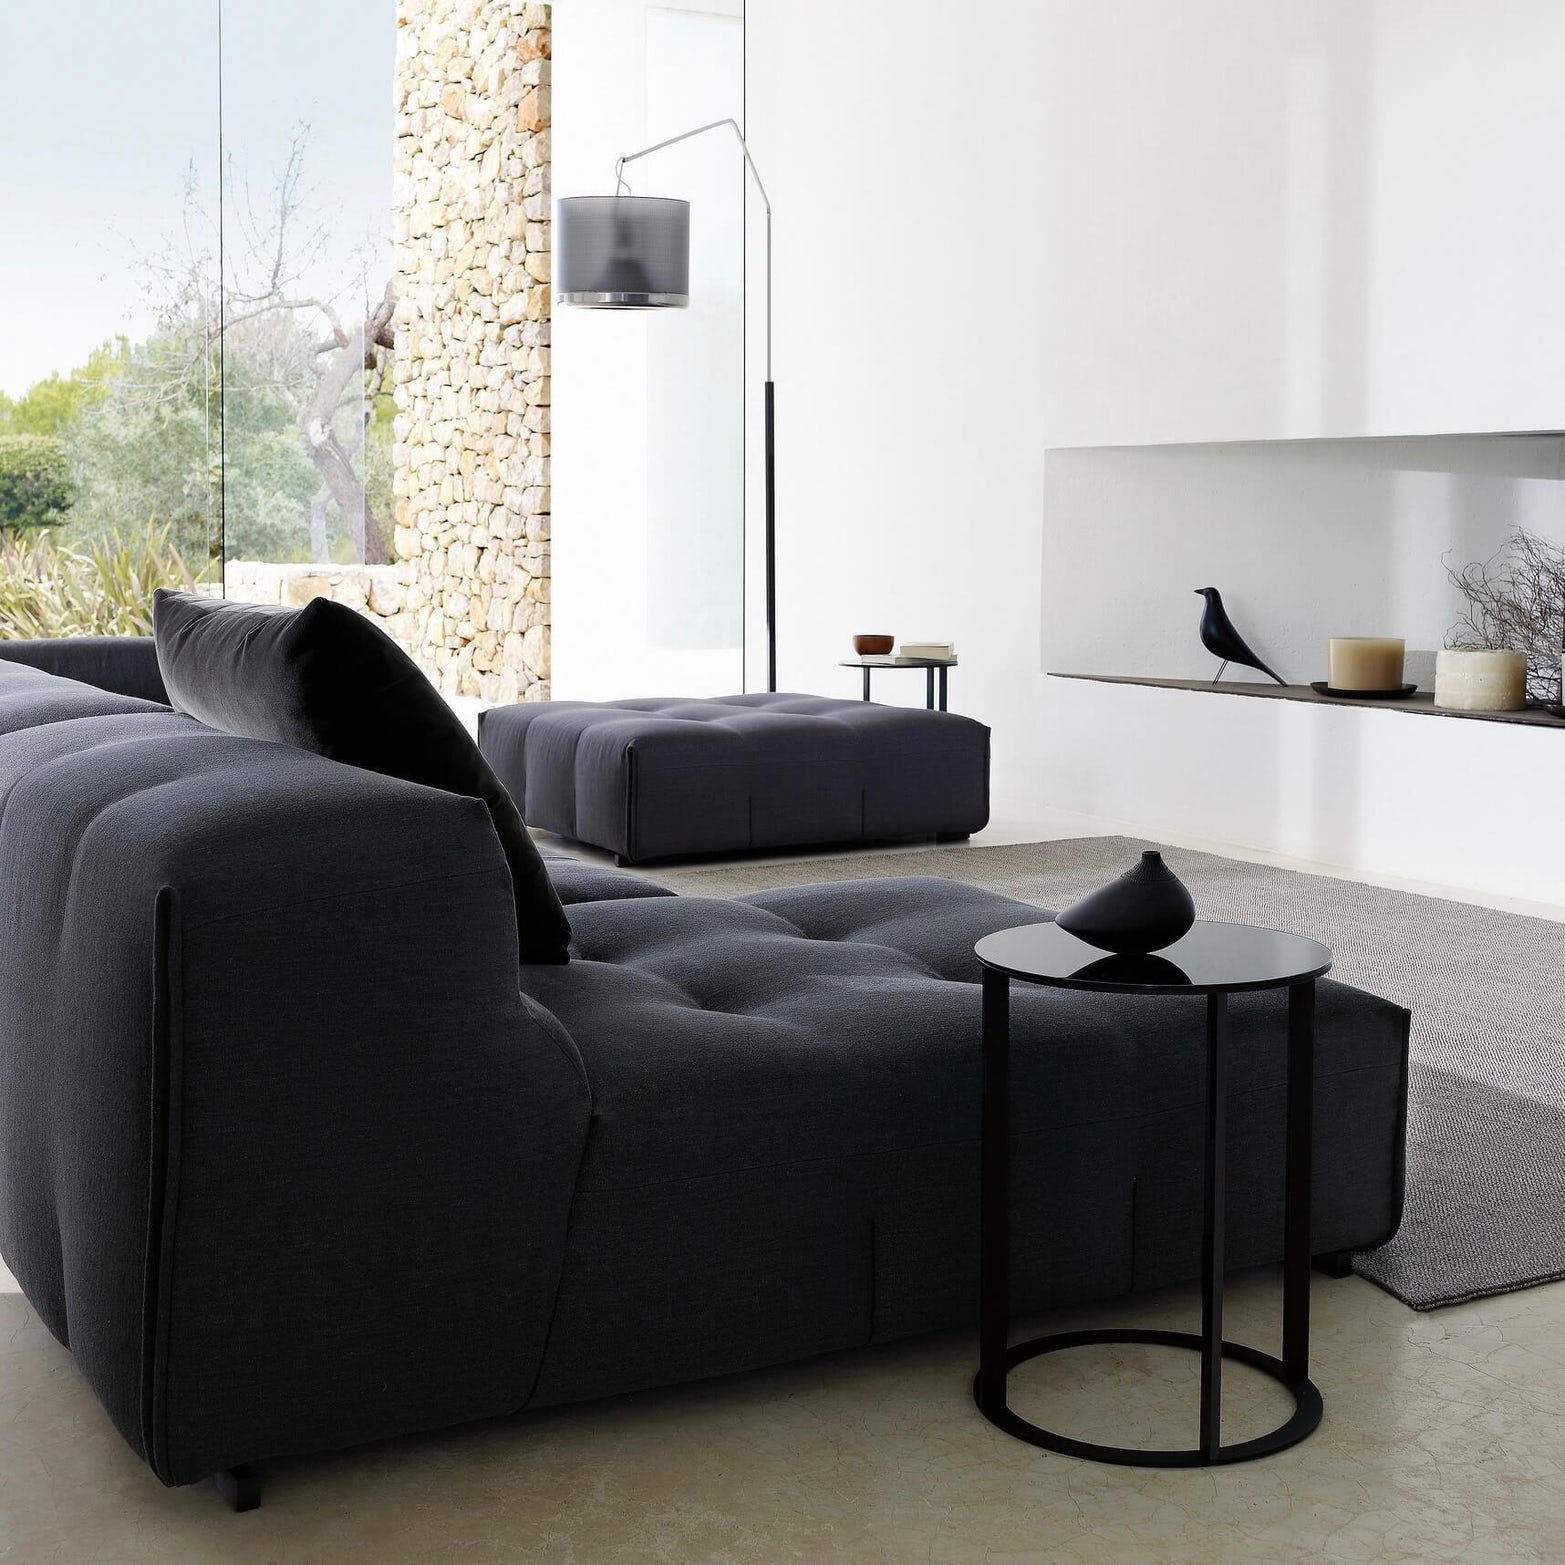 Tufty Too Sofa System Context 5